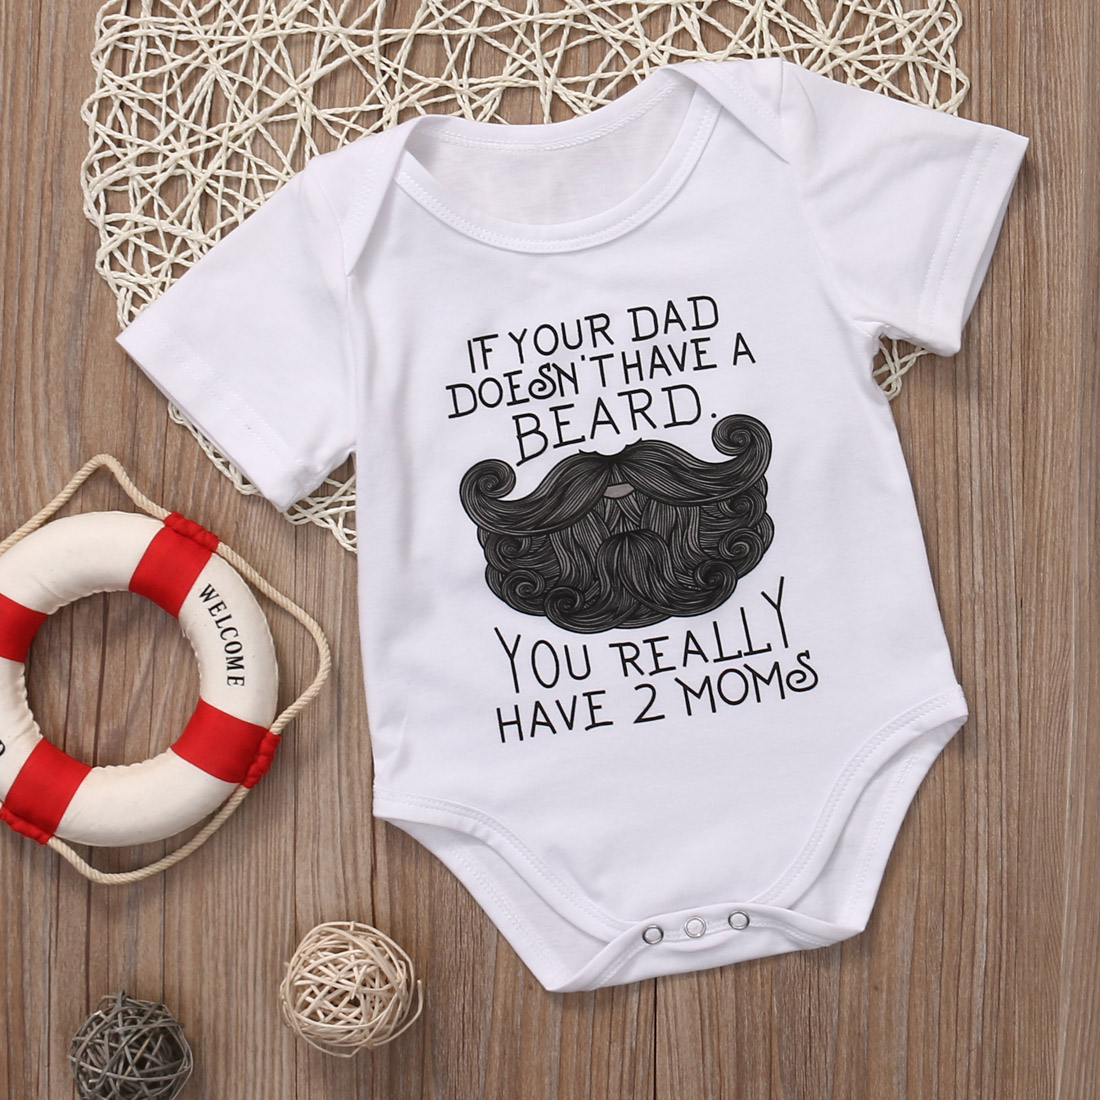 Summer Newborn Baby Clothes 0-18M Infant Boy Girls Romper Jumpsuit Outfits One-Pieces Clothes newborn infant baby girl sleeveless denim romper jumpsuit toddler one pieces outfits summer sunsuit clothes